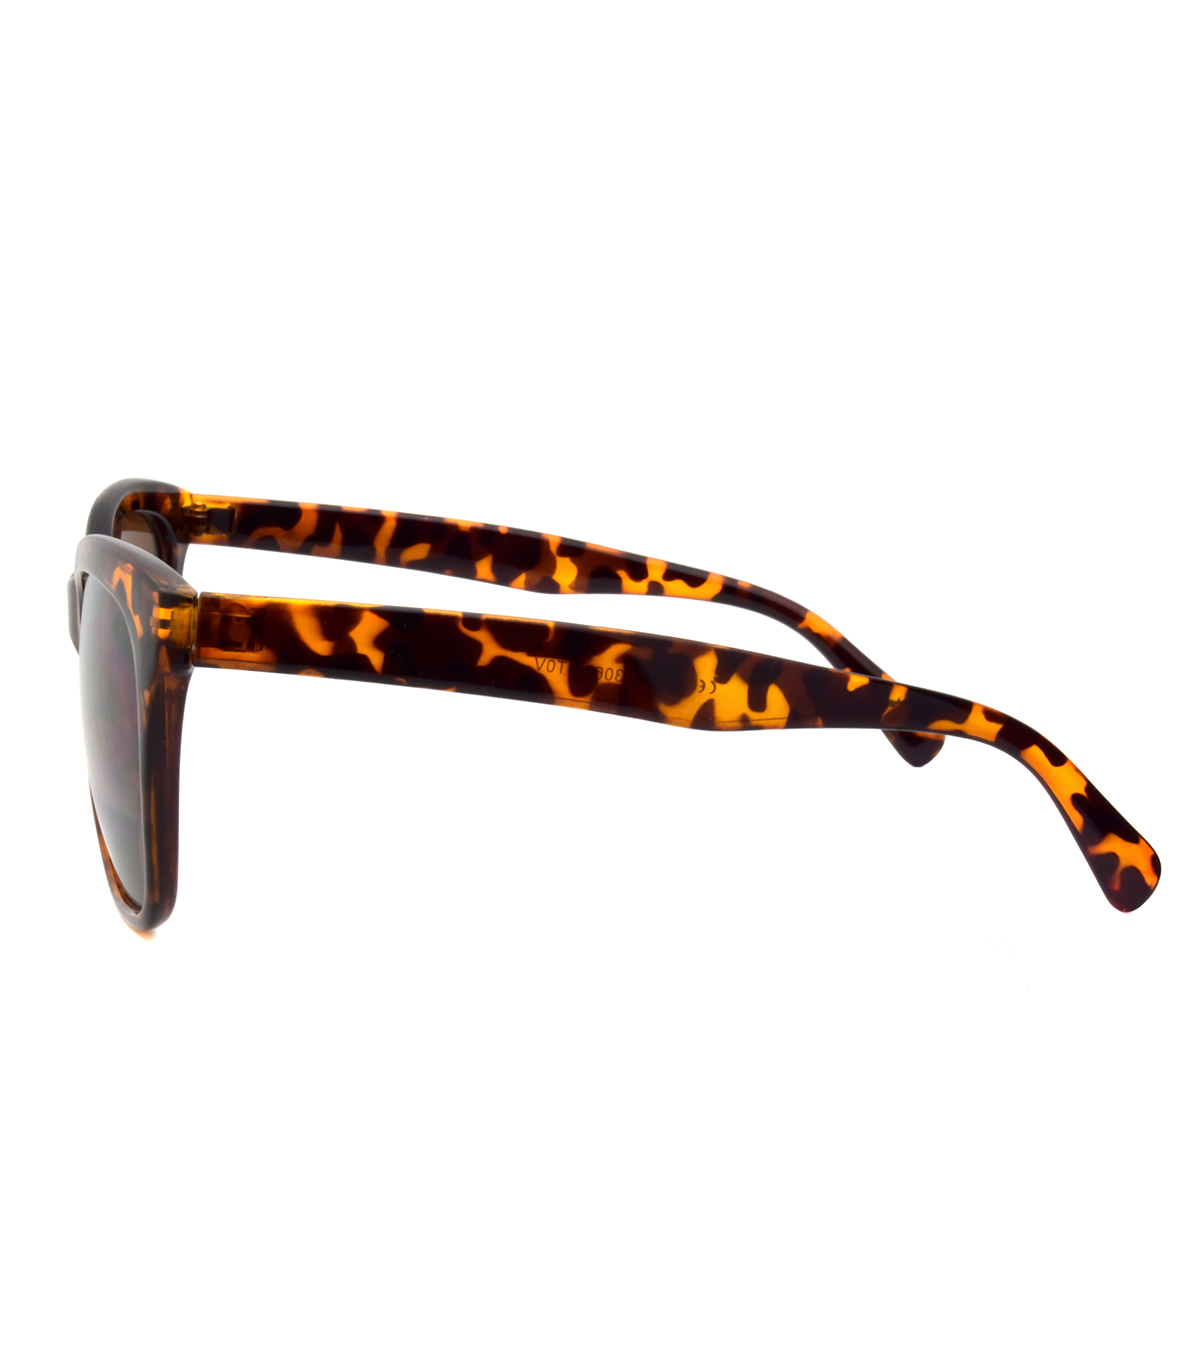 Sunglasses with Square Frame-Brown Tortoise Print